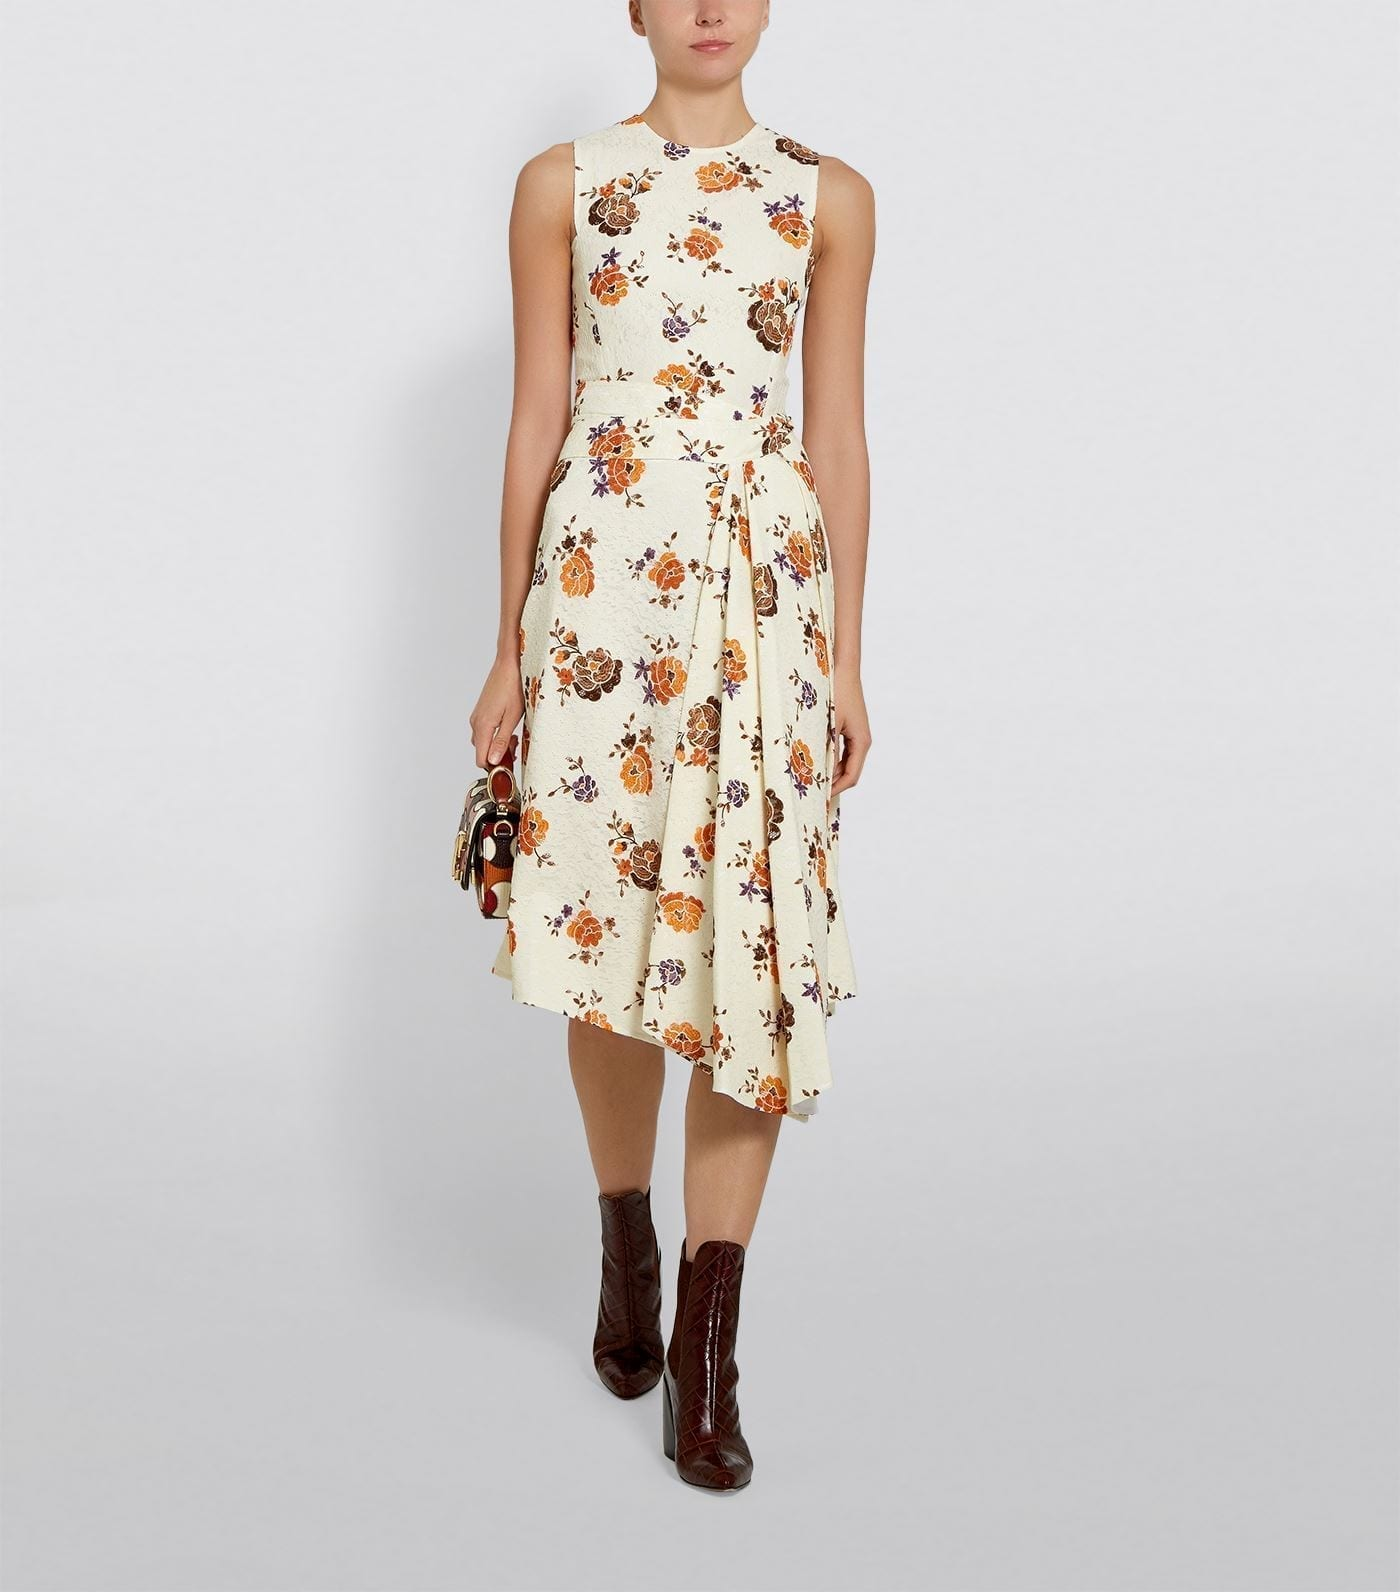 VICTORIA BECKHAM Floral Asymmetric Pleat Dress